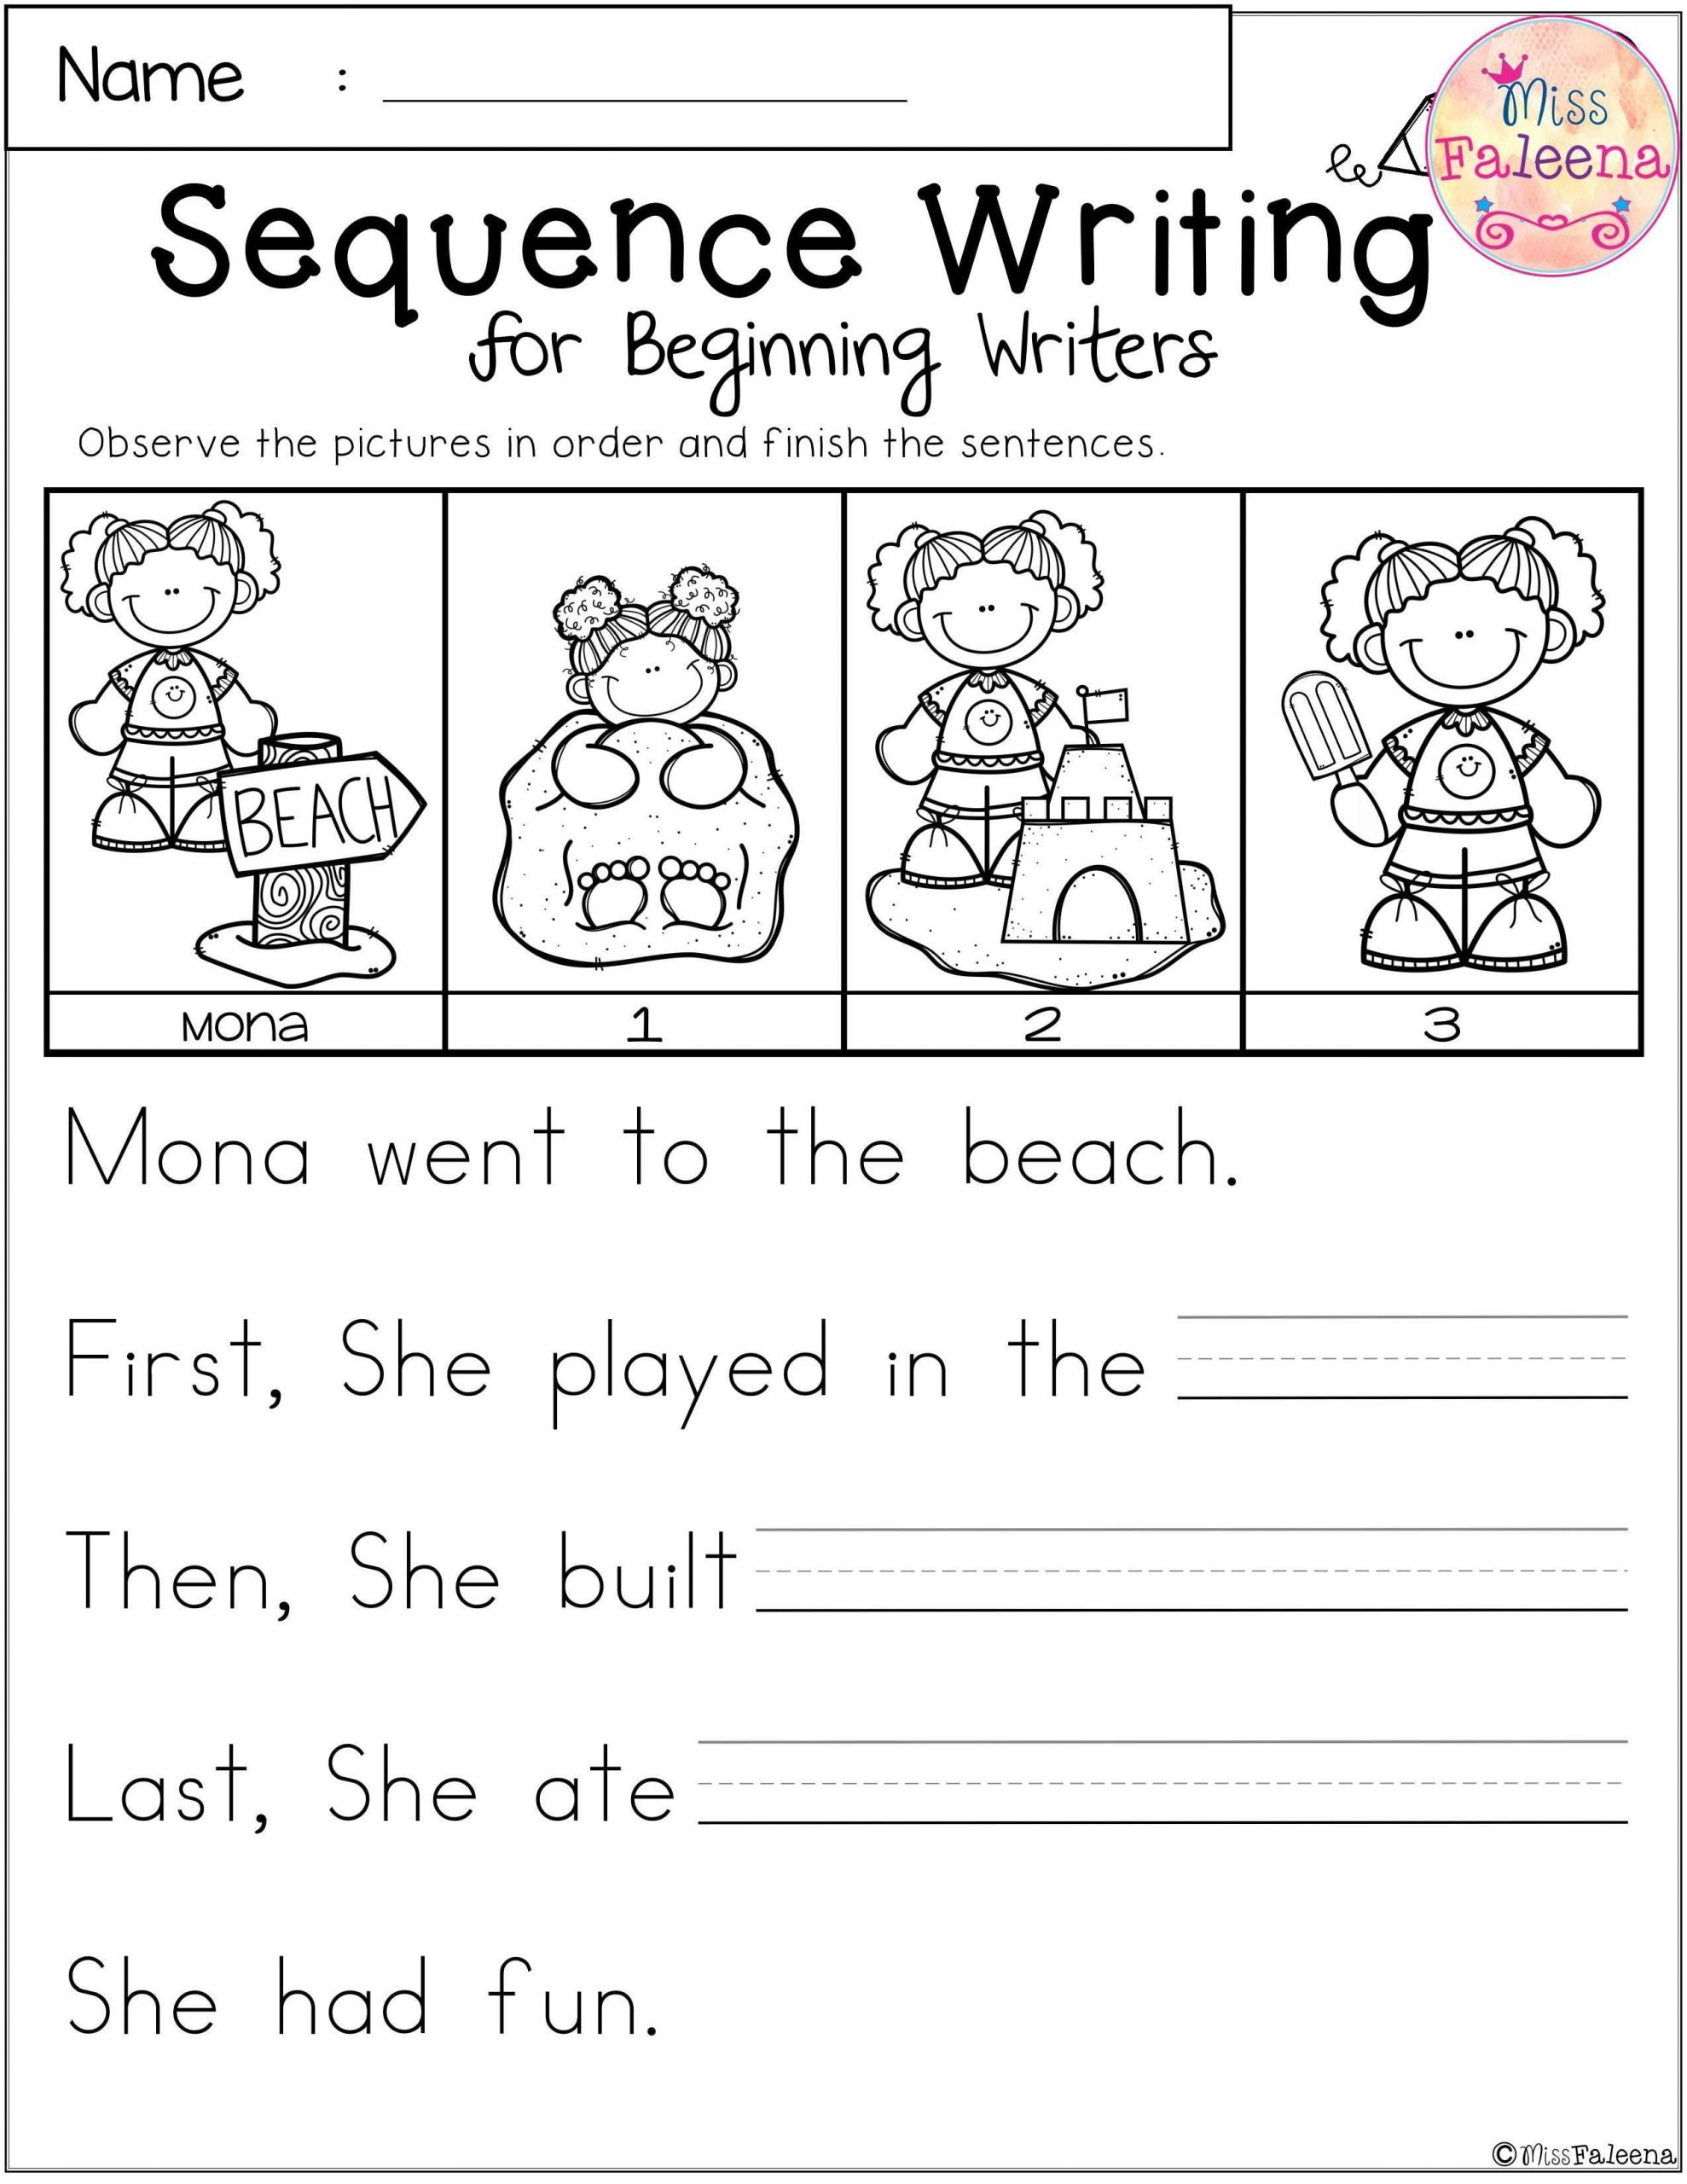 Sequence Pictures Worksheets Free Sequence Writing for Beginning Writers